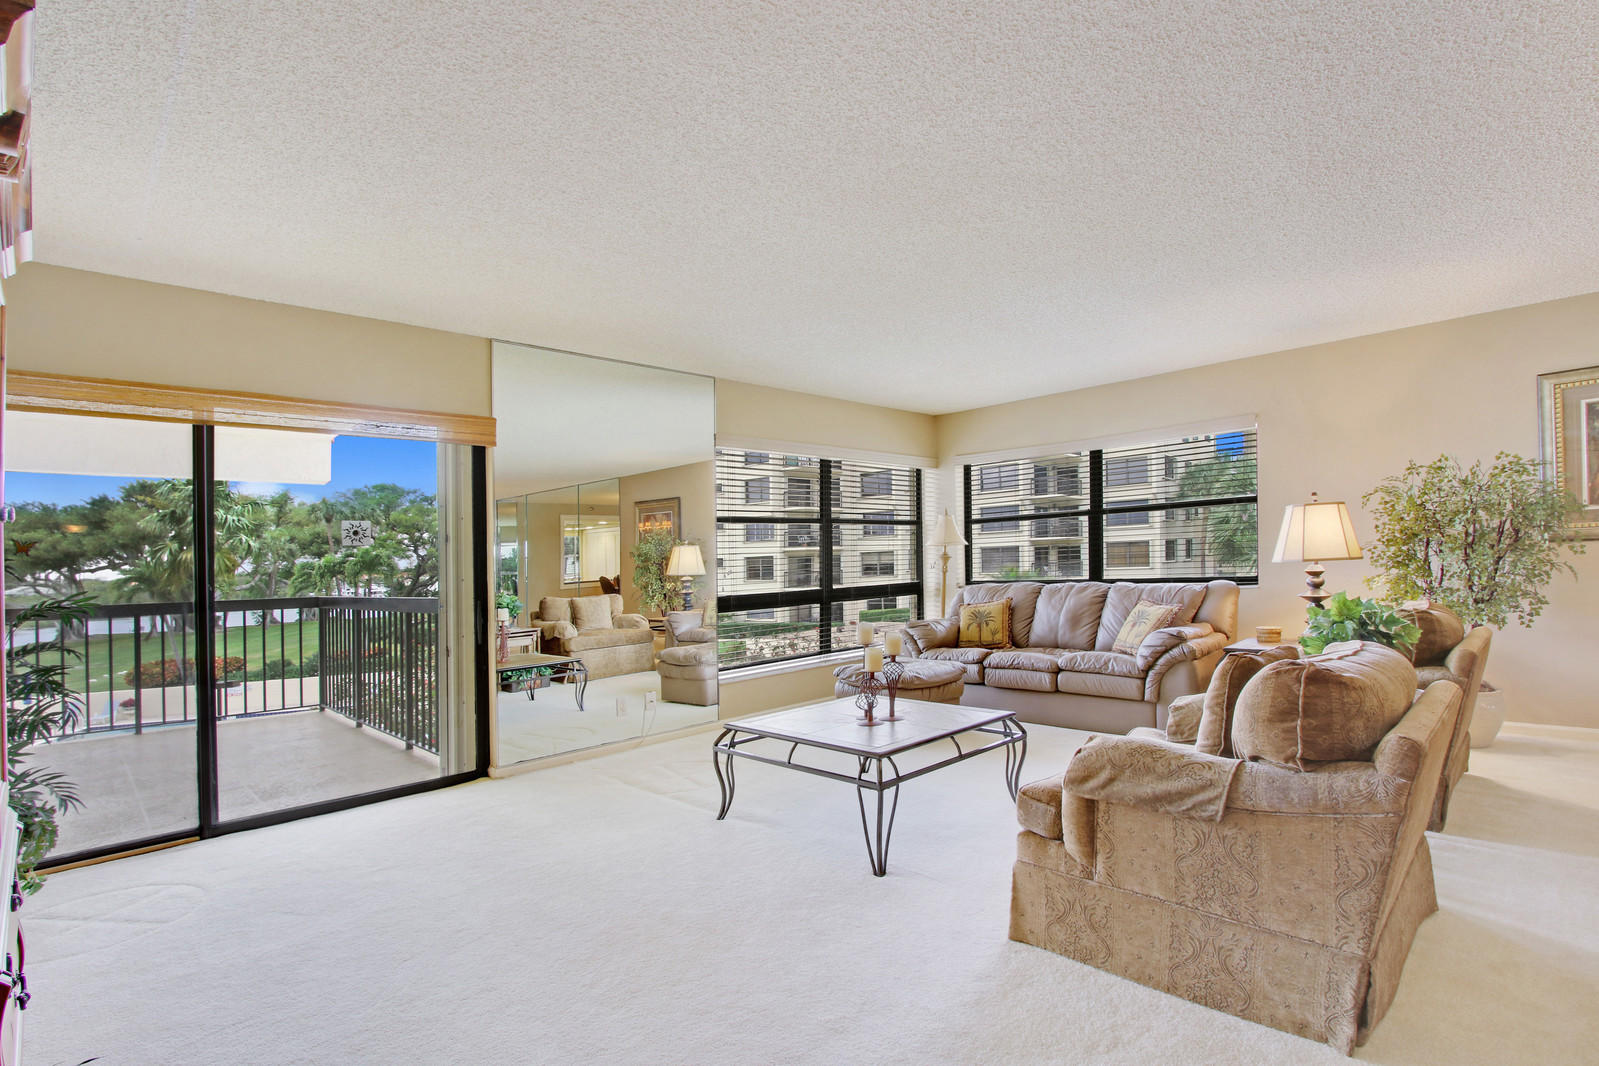 364 Golfview Road 305, North Palm Beach, Florida 33408, 3 Bedrooms Bedrooms, ,2 BathroomsBathrooms,A,Condominium,Golfview,RX-10508819